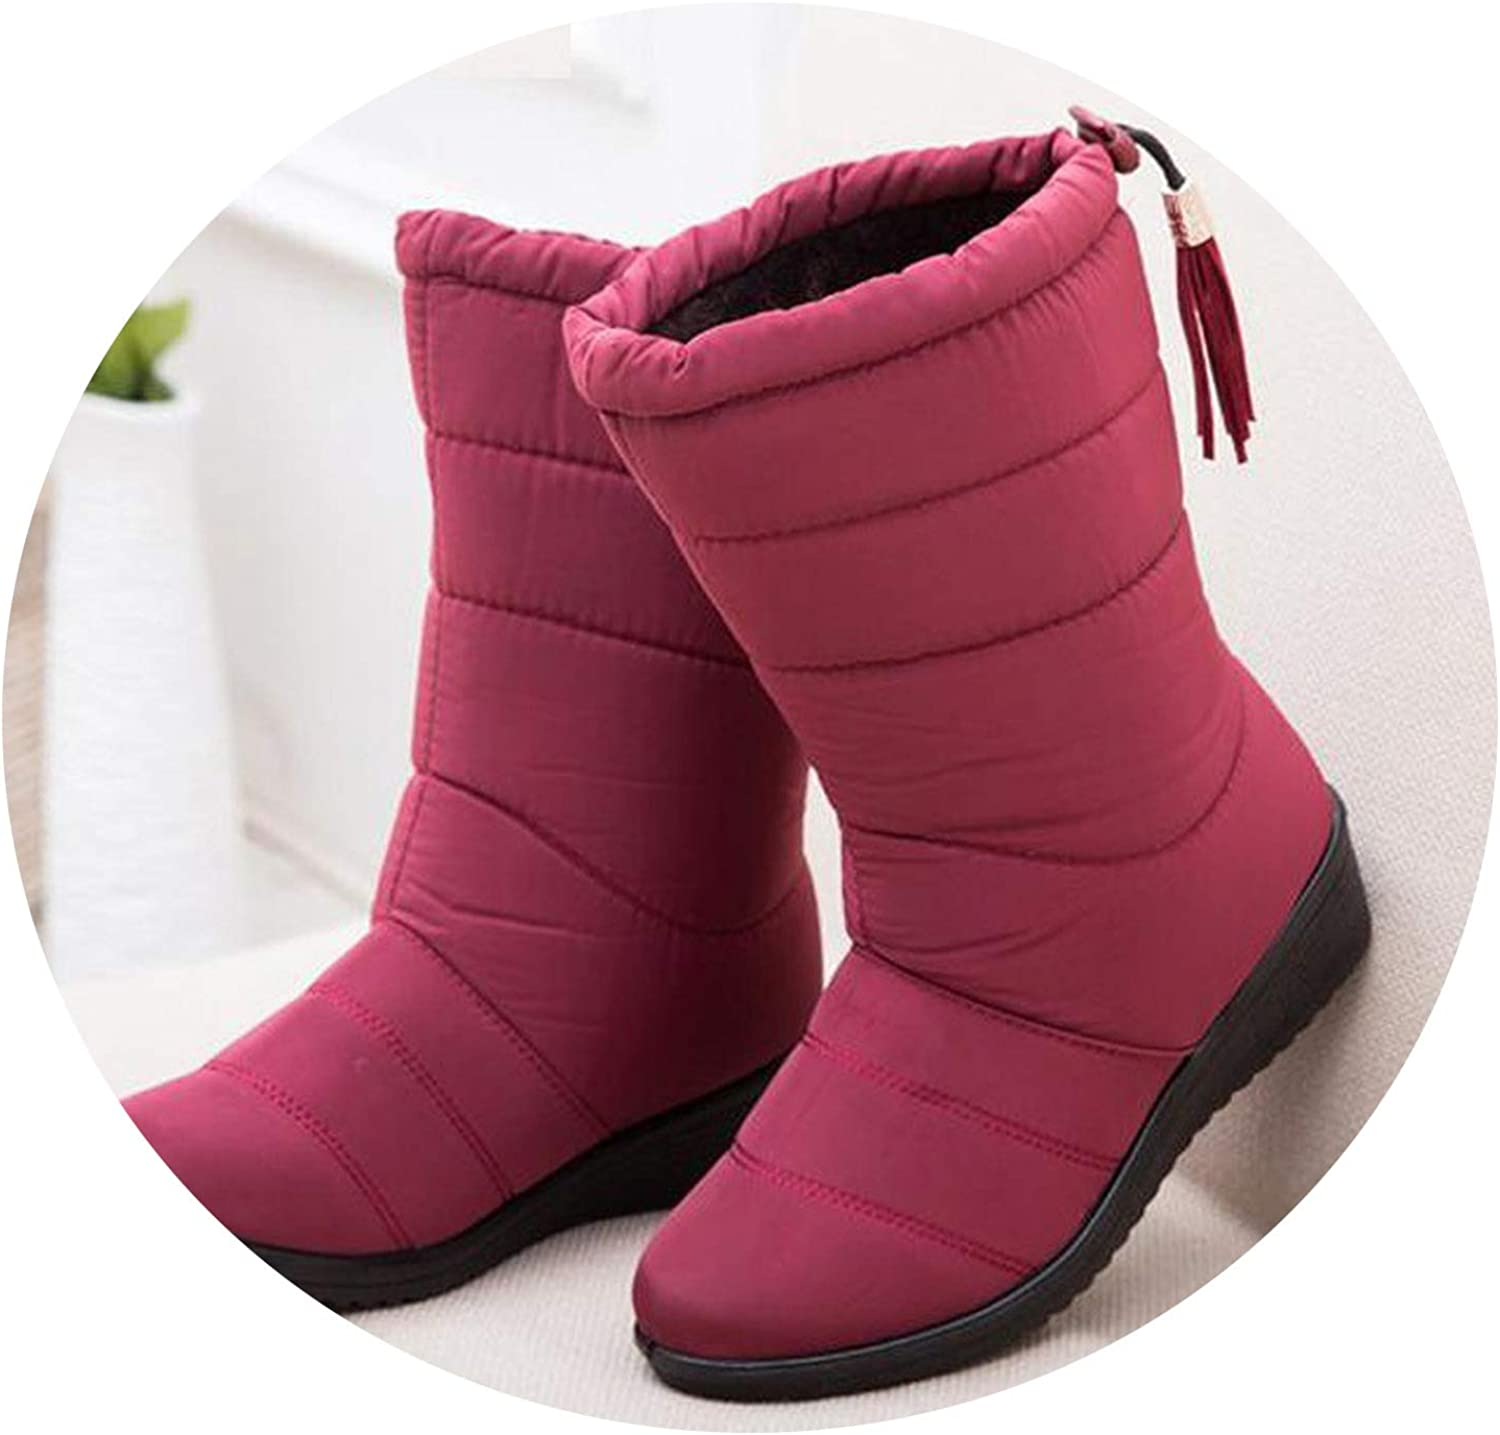 Female Down Winter Boots Waterproof Warm Ankle Snow Boots Ladies shoes Woman Warm Fur